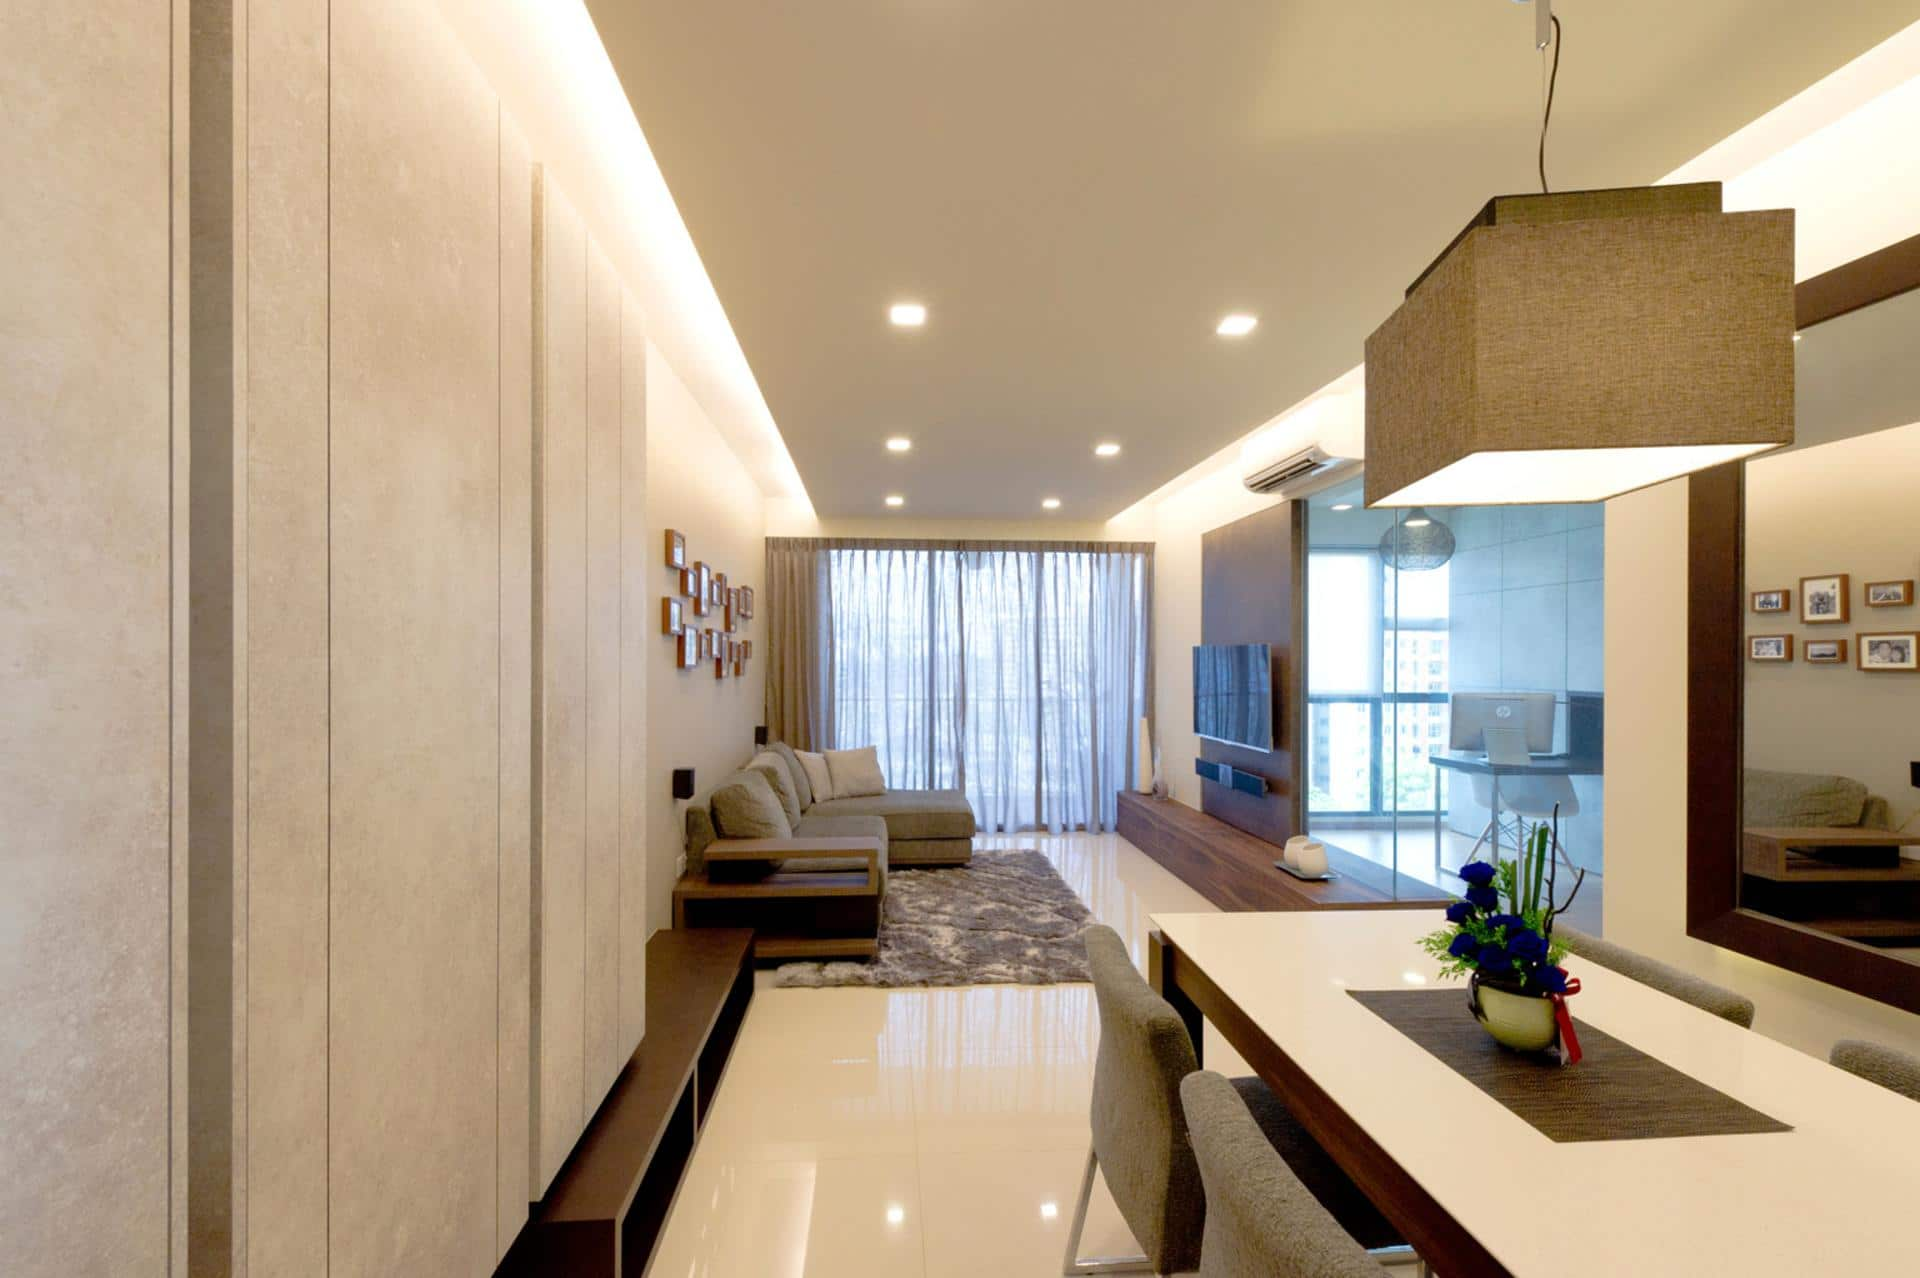 Dyel design modern minimalist 4 home renovation singapore for Minimalist house renovation